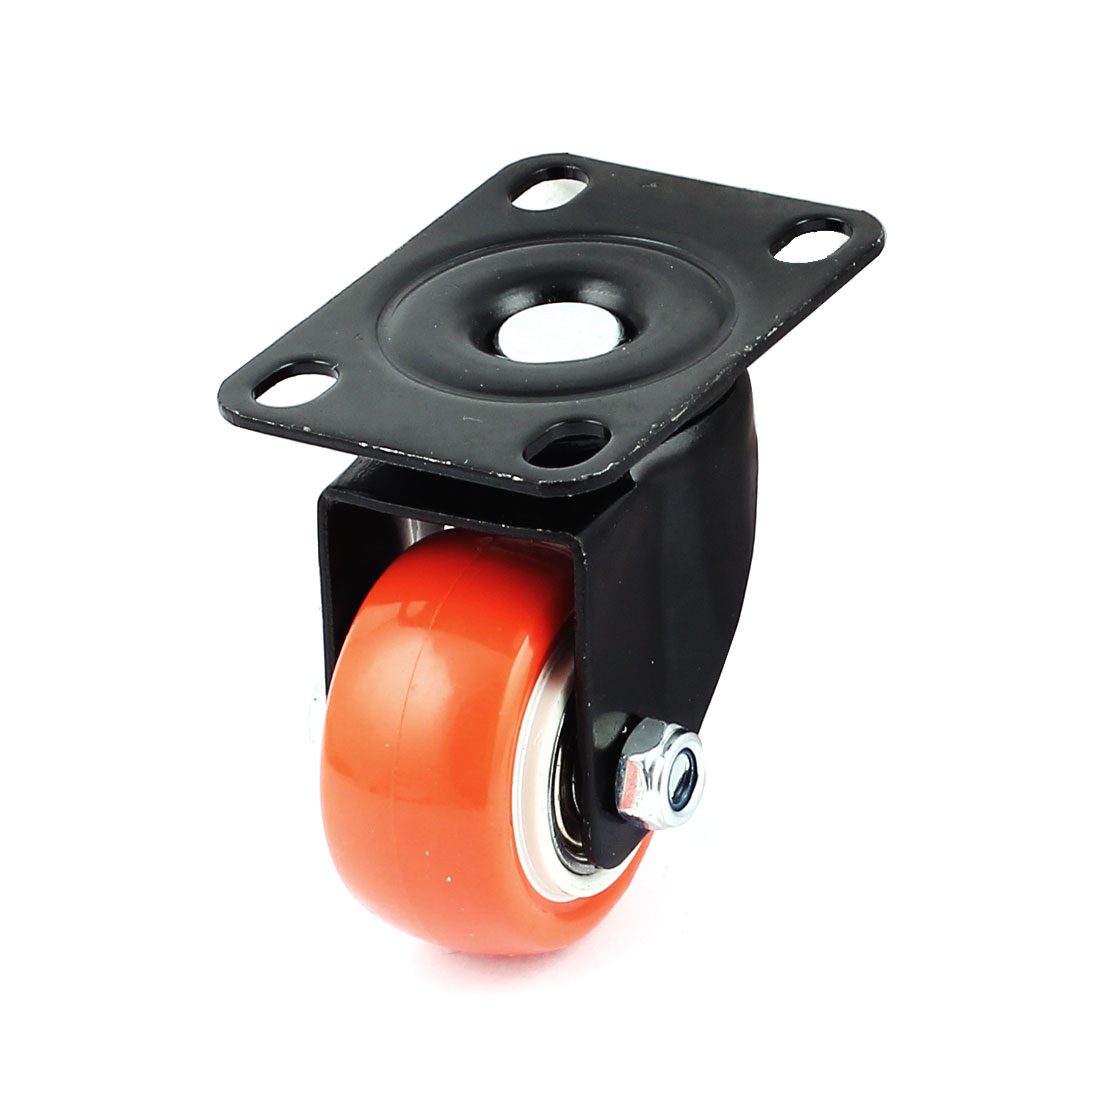 "Shopping Cart Flat Plate 1.5"" Dia Nylon Ball Swivel Caster Wheel"